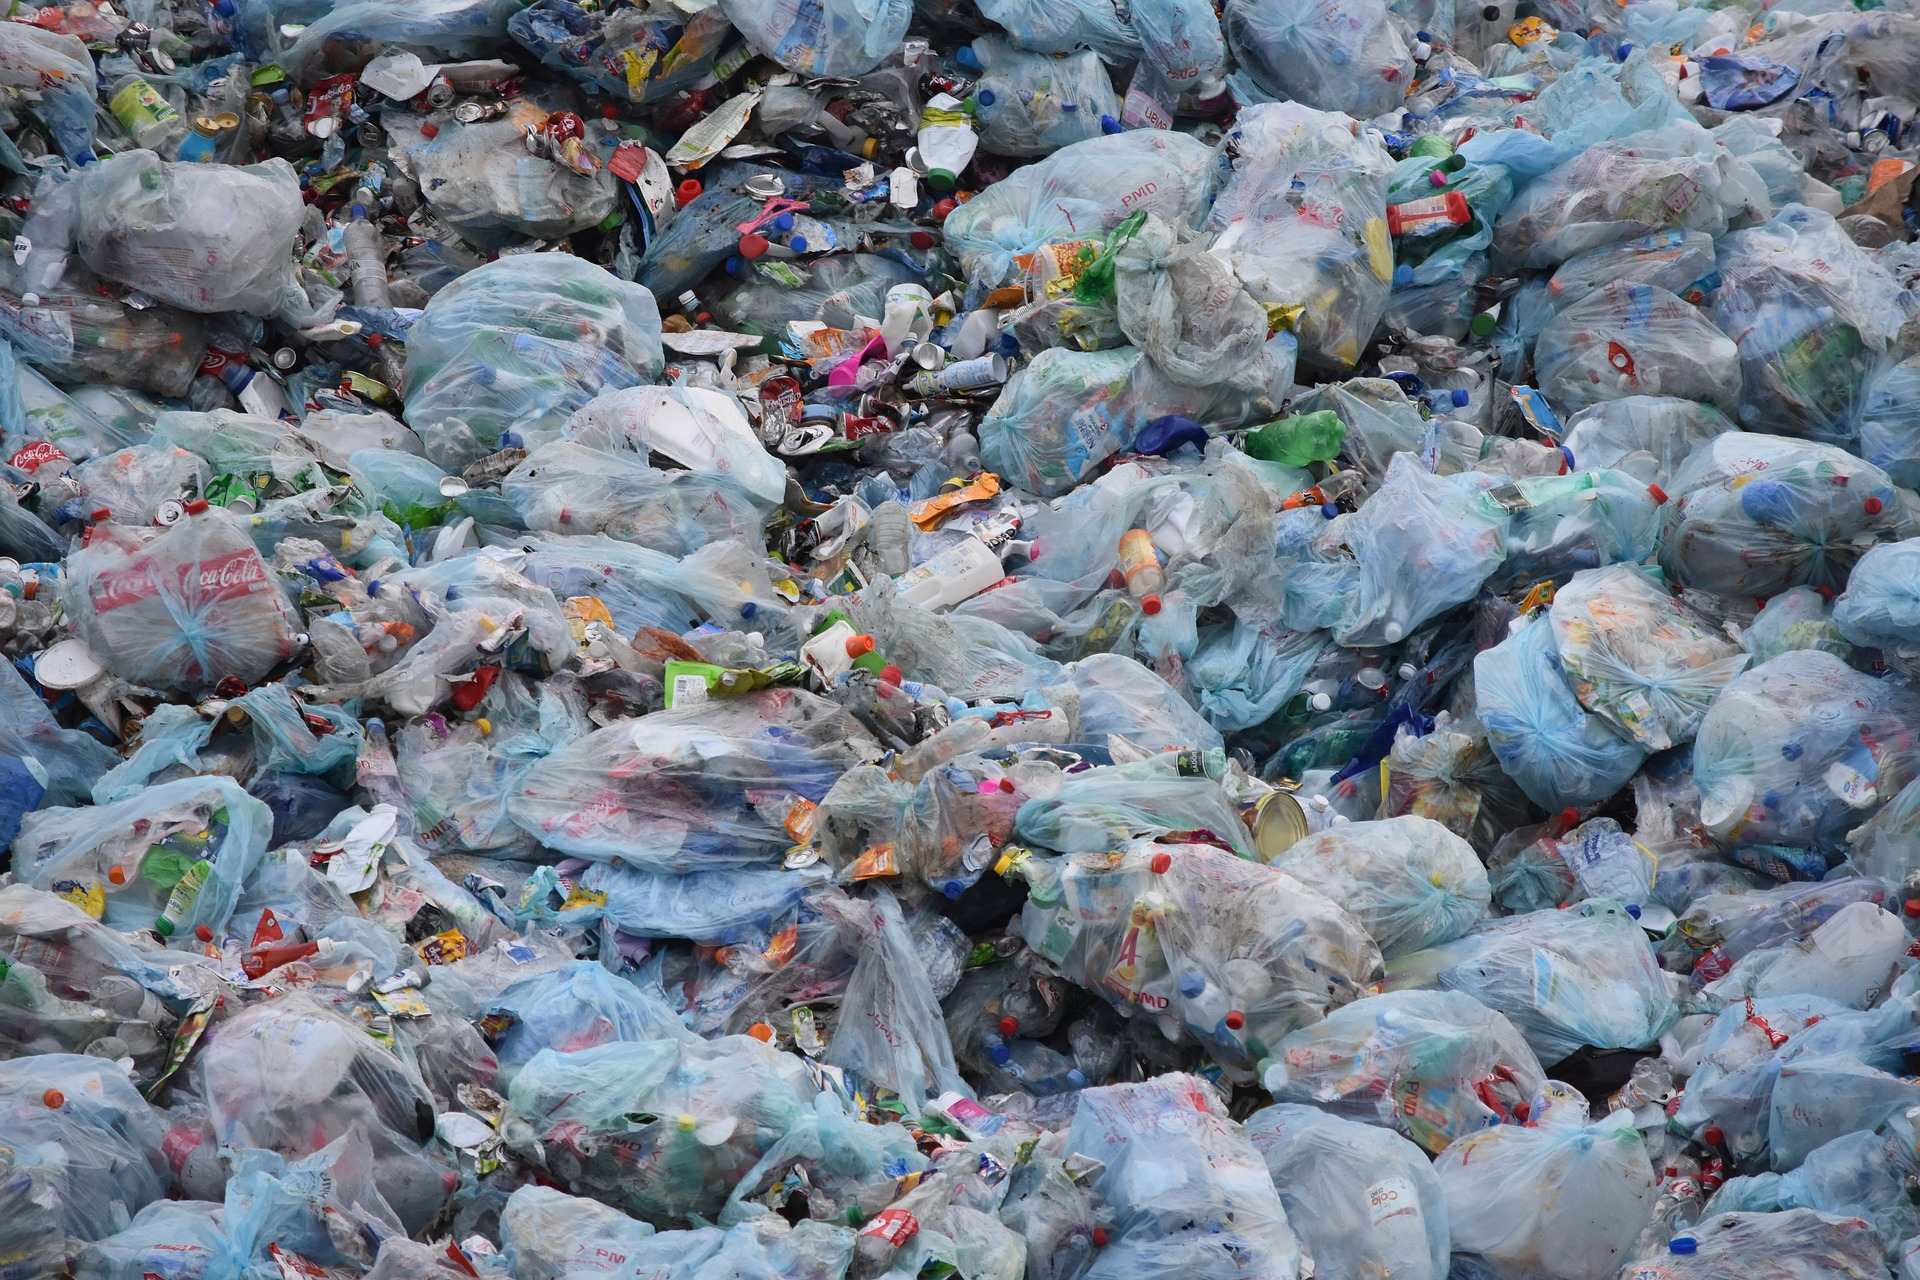 Opportunity to Learn About Reducing Waste in the Workplace